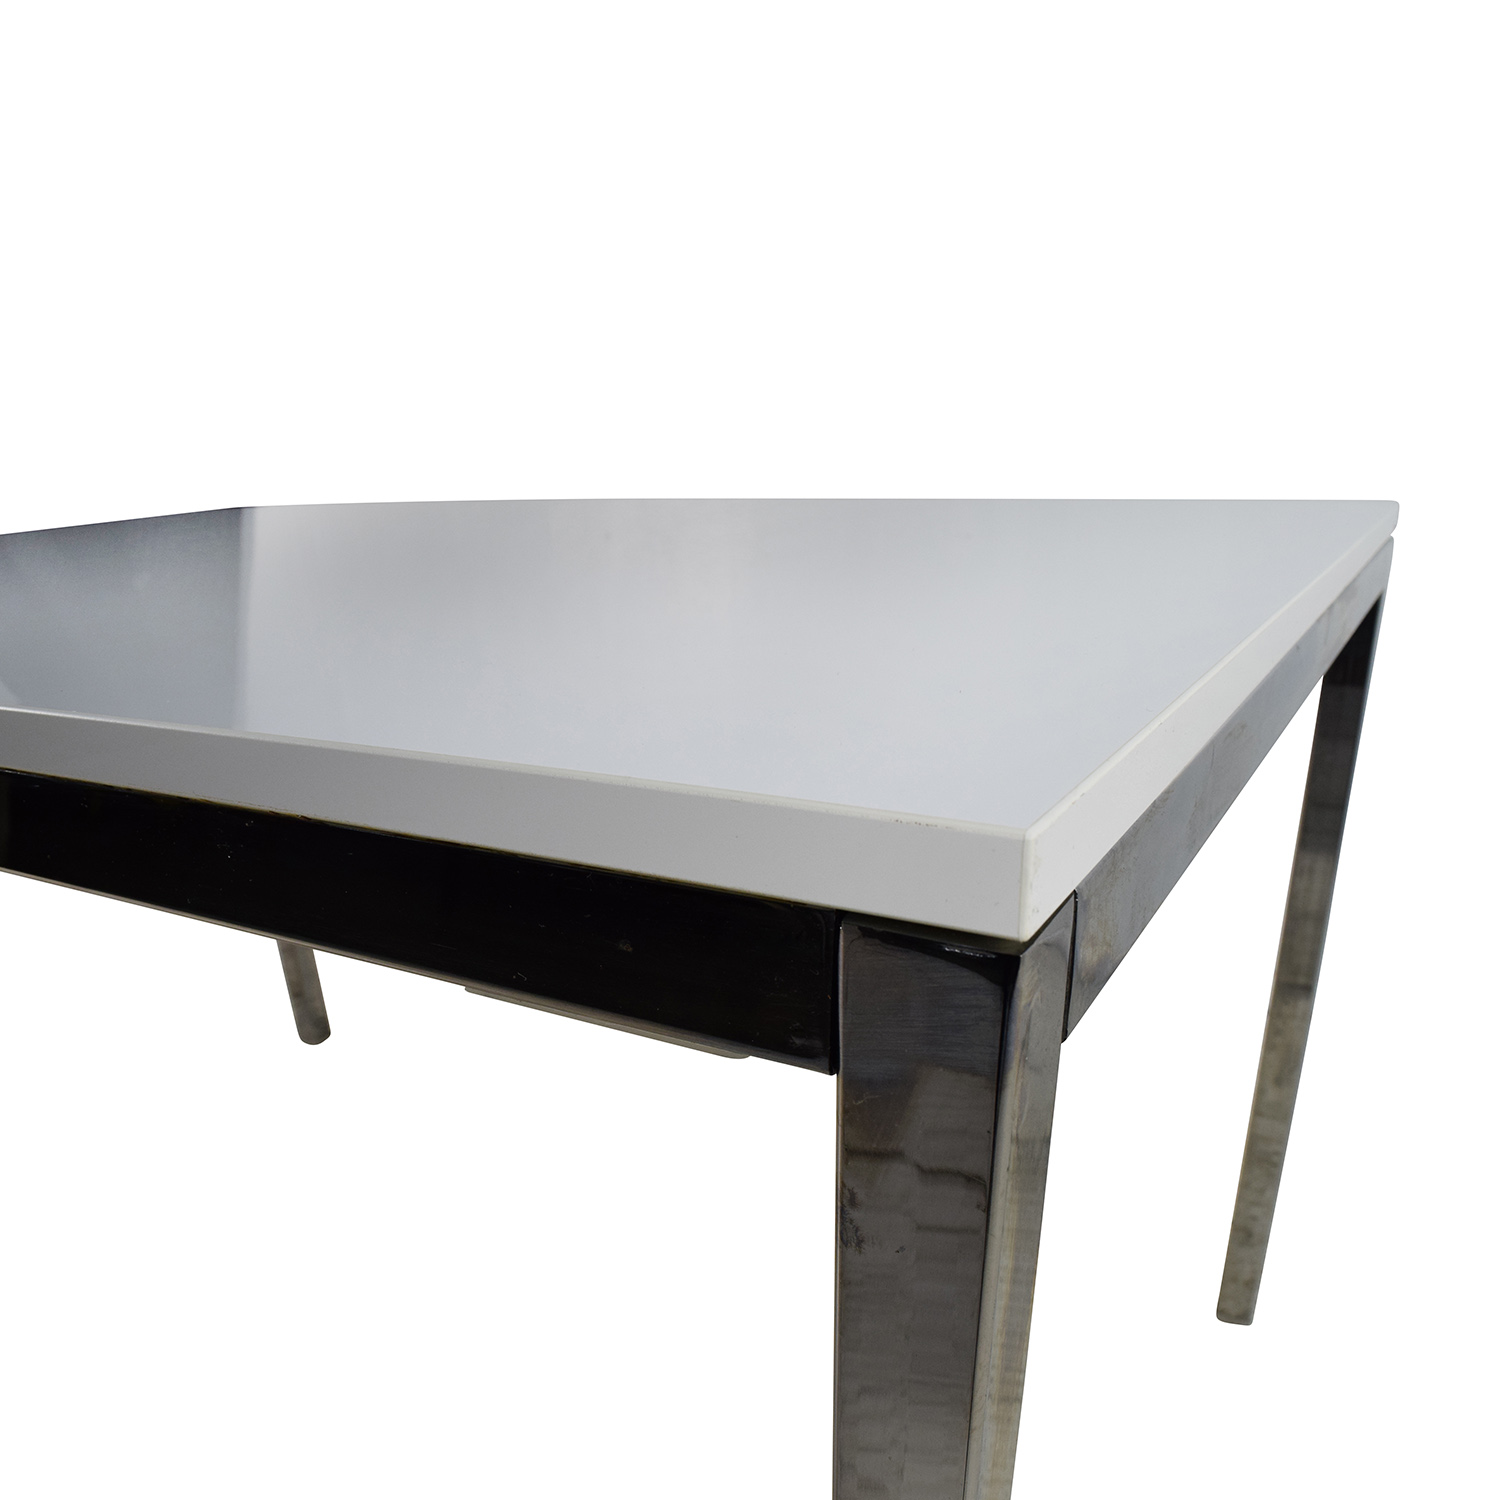 Super 57 Off Ikea Ikea White Top Dining Table With Silver Chrome Legs Tables Download Free Architecture Designs Rallybritishbridgeorg